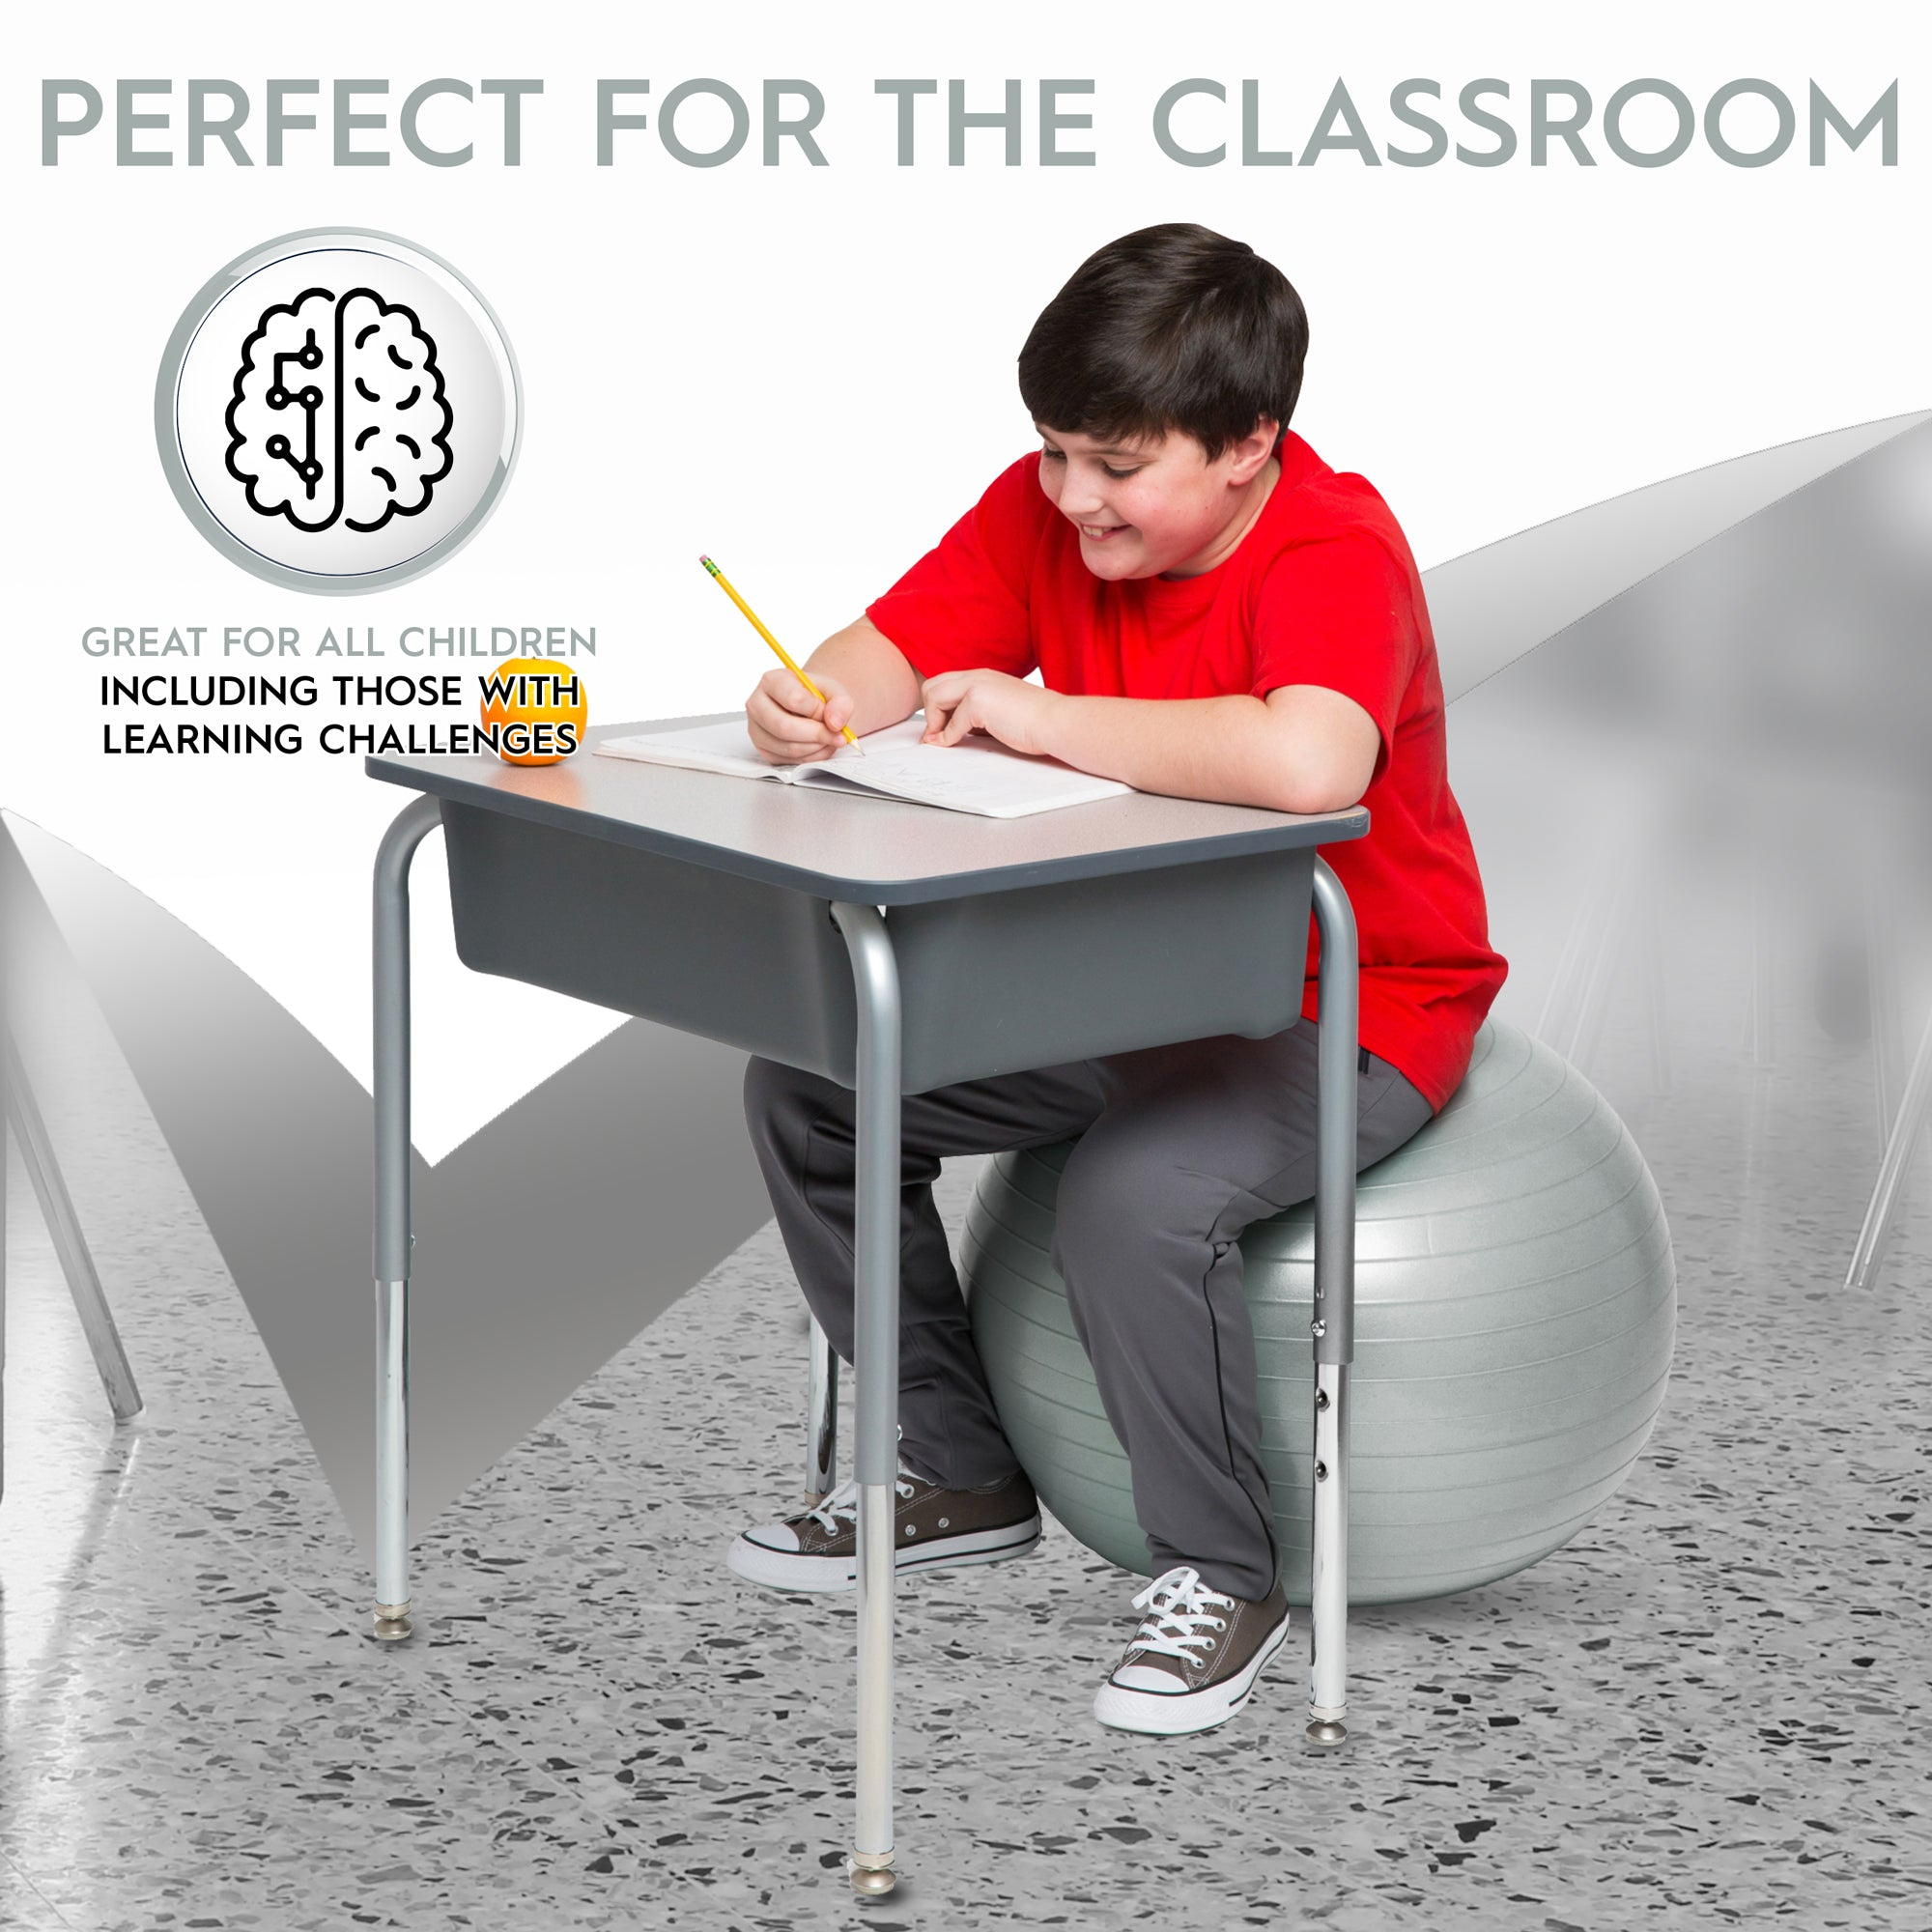 Marvelous Weighted Yoga Balance Ball Chair For Kids And Adults Up To 56 Tall Silver Short Links Chair Design For Home Short Linksinfo